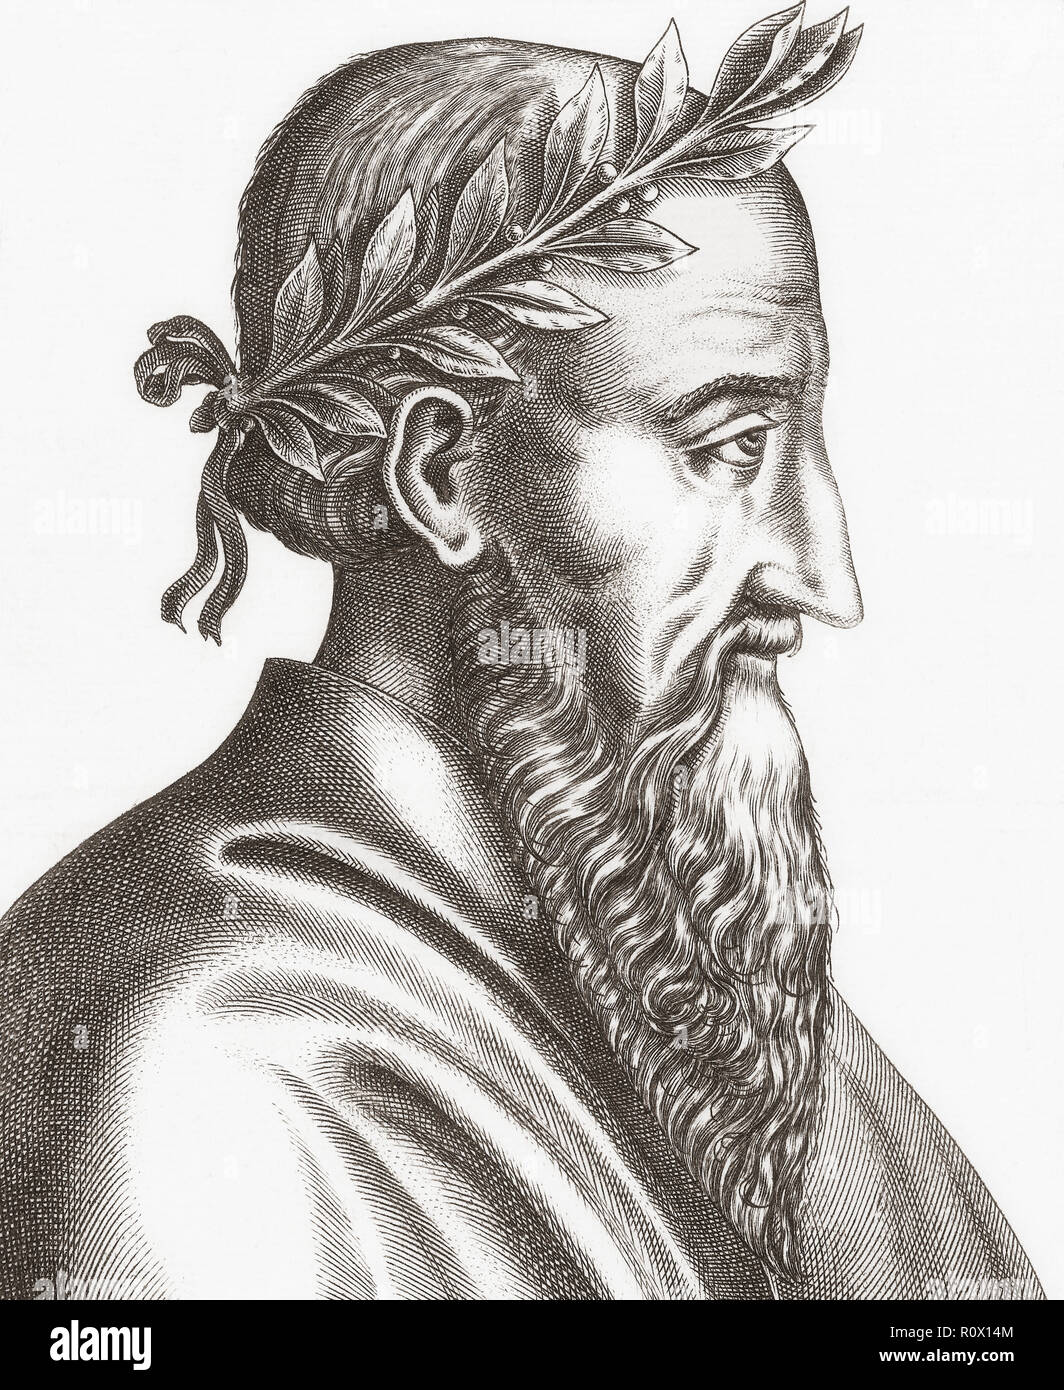 Zeno of Citium, 334-262 BC. Cypriot philosopher.  Founder of the philosophical school known as Stoicism. - Stock Image